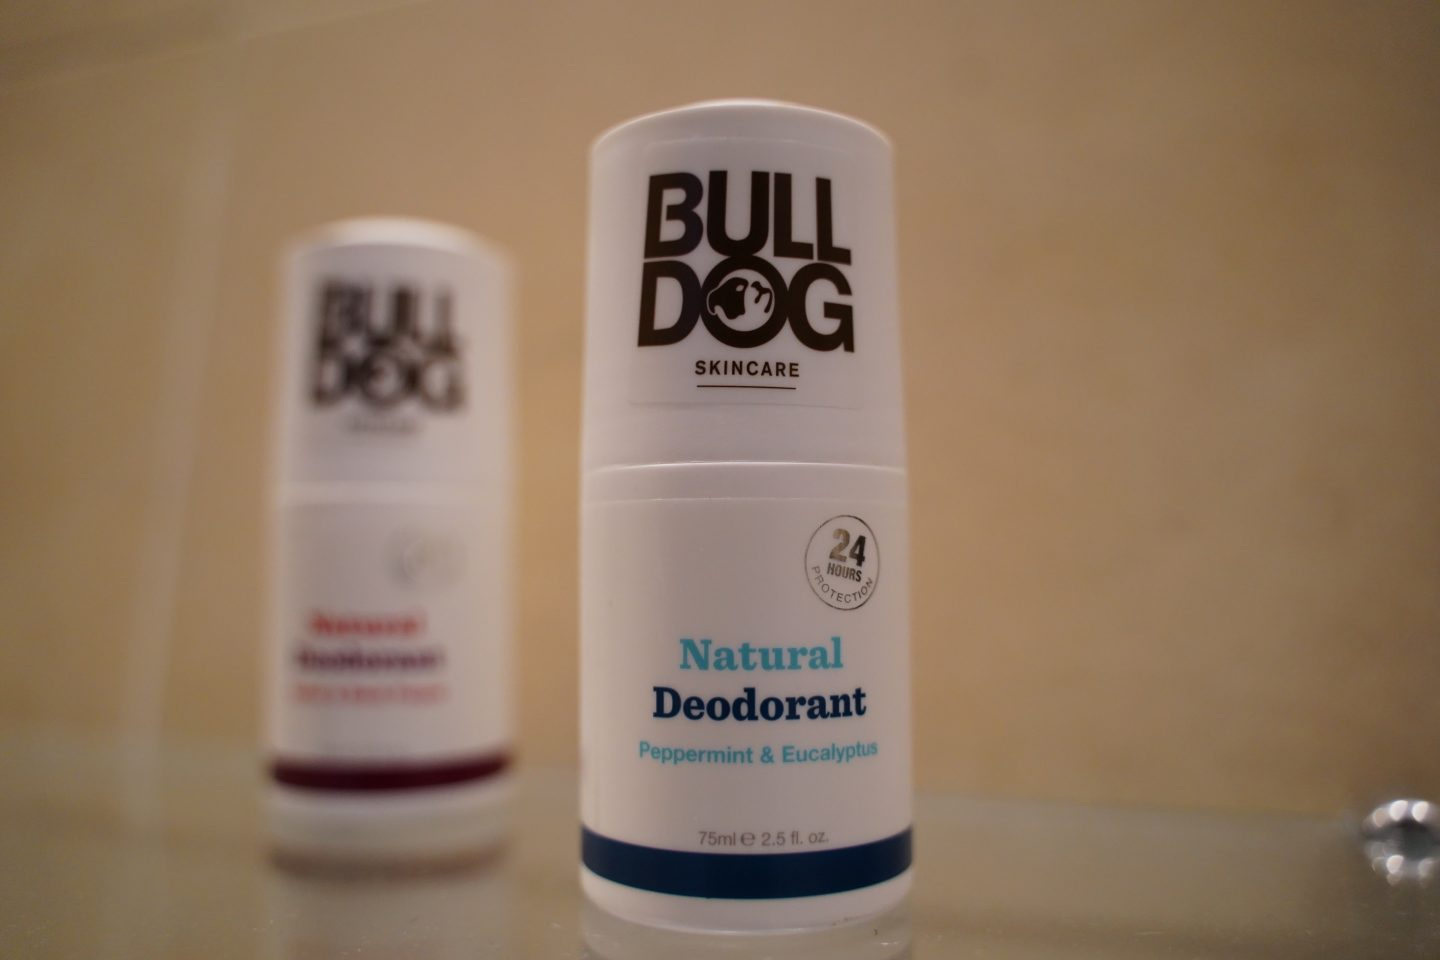 Maketh_the_man-Anton_welcome-bulldog_skincare_natural_deodorant-peppermint_eucalyptus